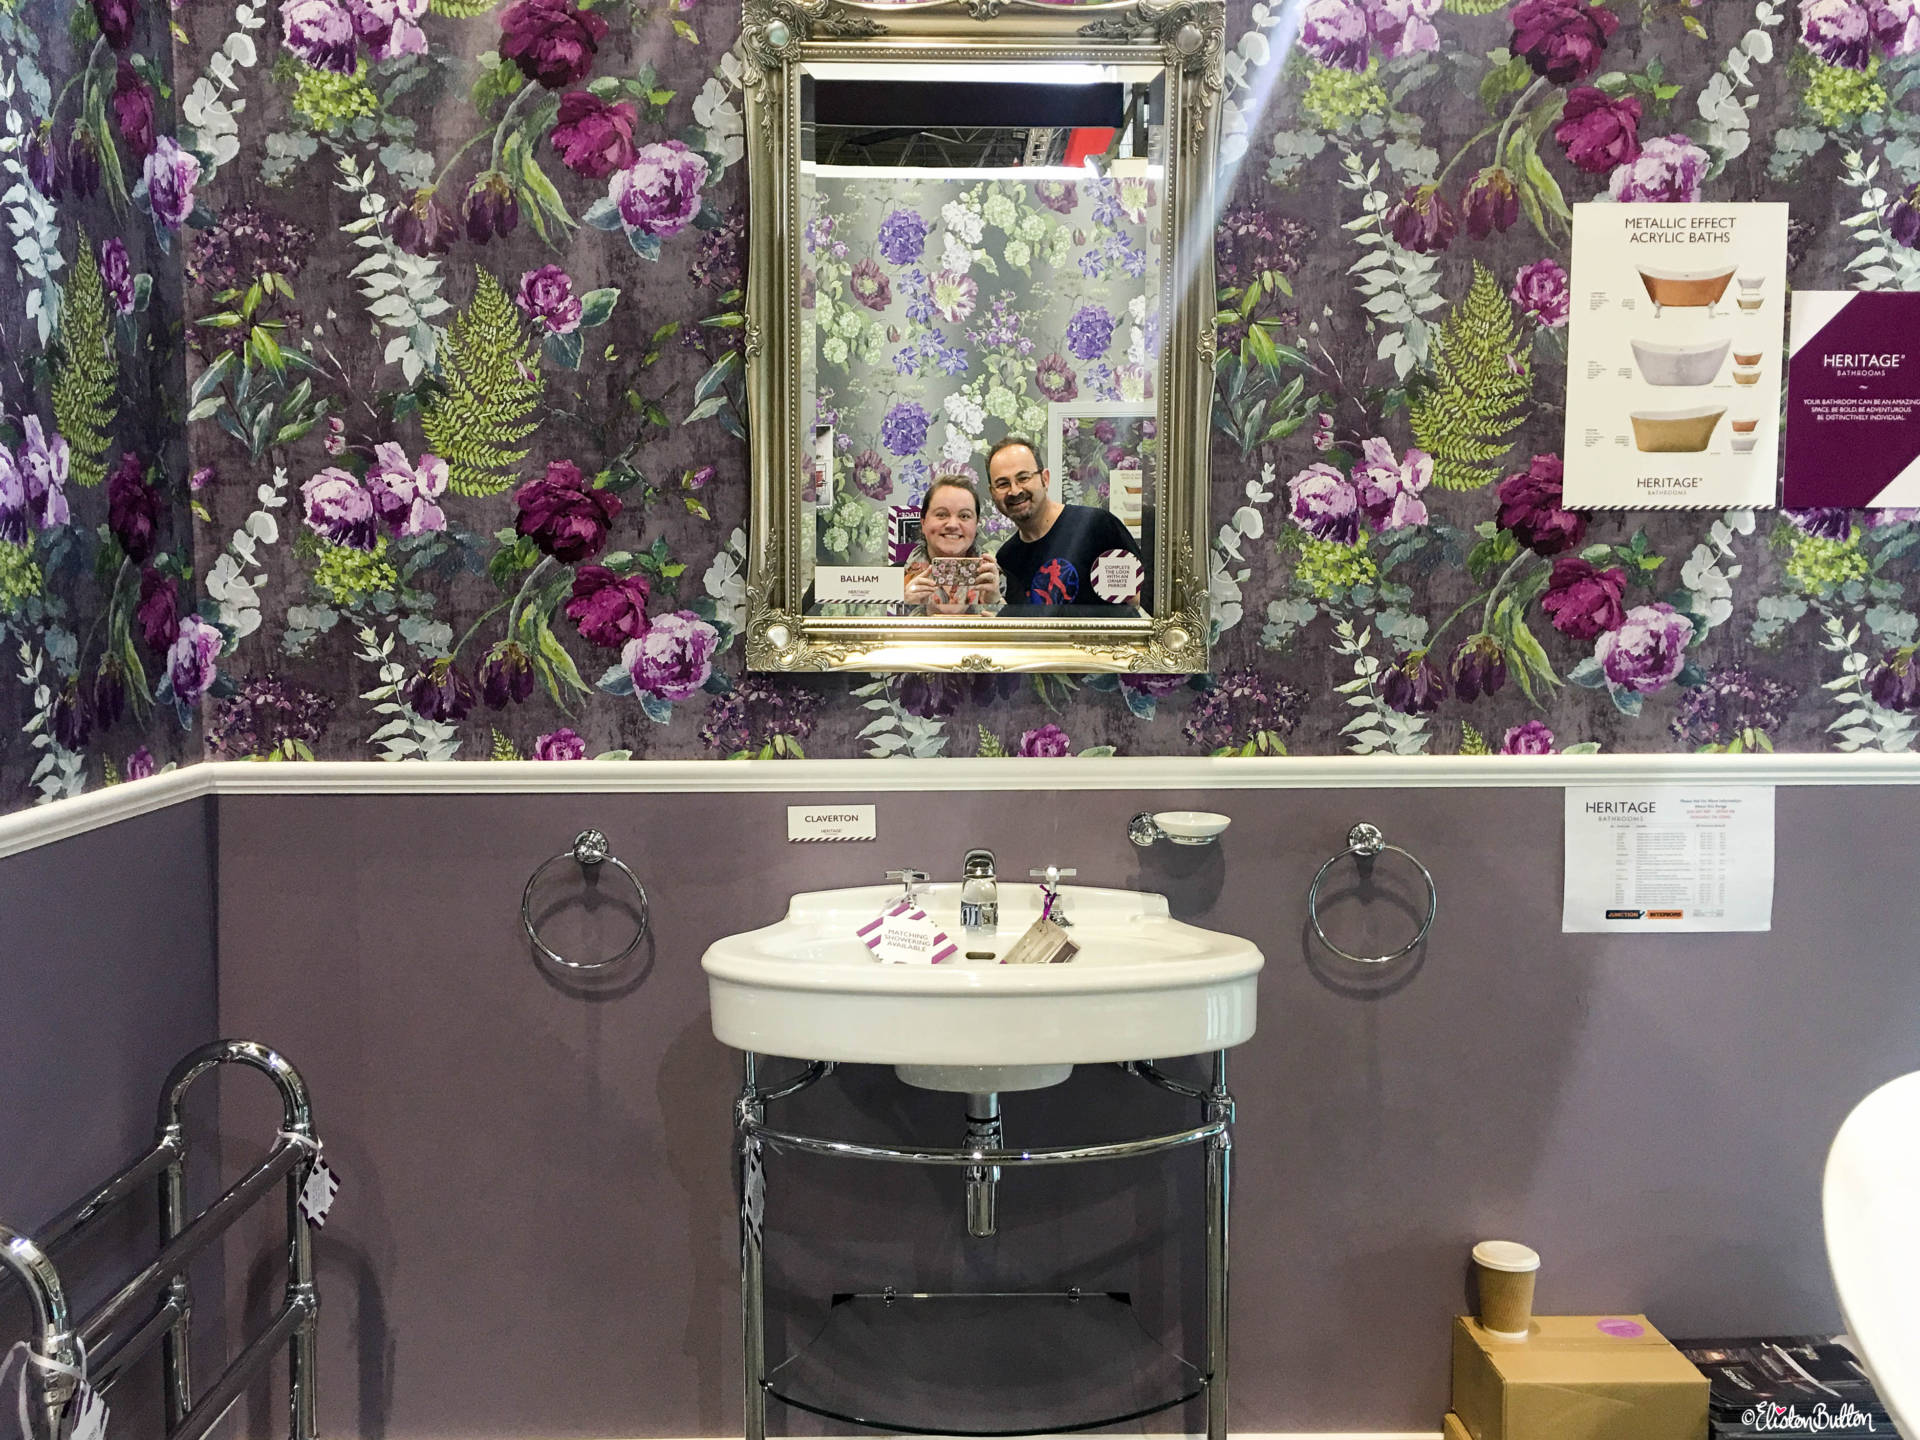 Beautiful Wallpaper and a Photo of Us at Heritage Bathrooms at Grand Designs Live 2017 with Eliston Button - Grand Designs Live 2017 – Part One at www.elistonbutton.com - Eliston Button - That Crafty Kid – Art, Design, Craft & Adventure.